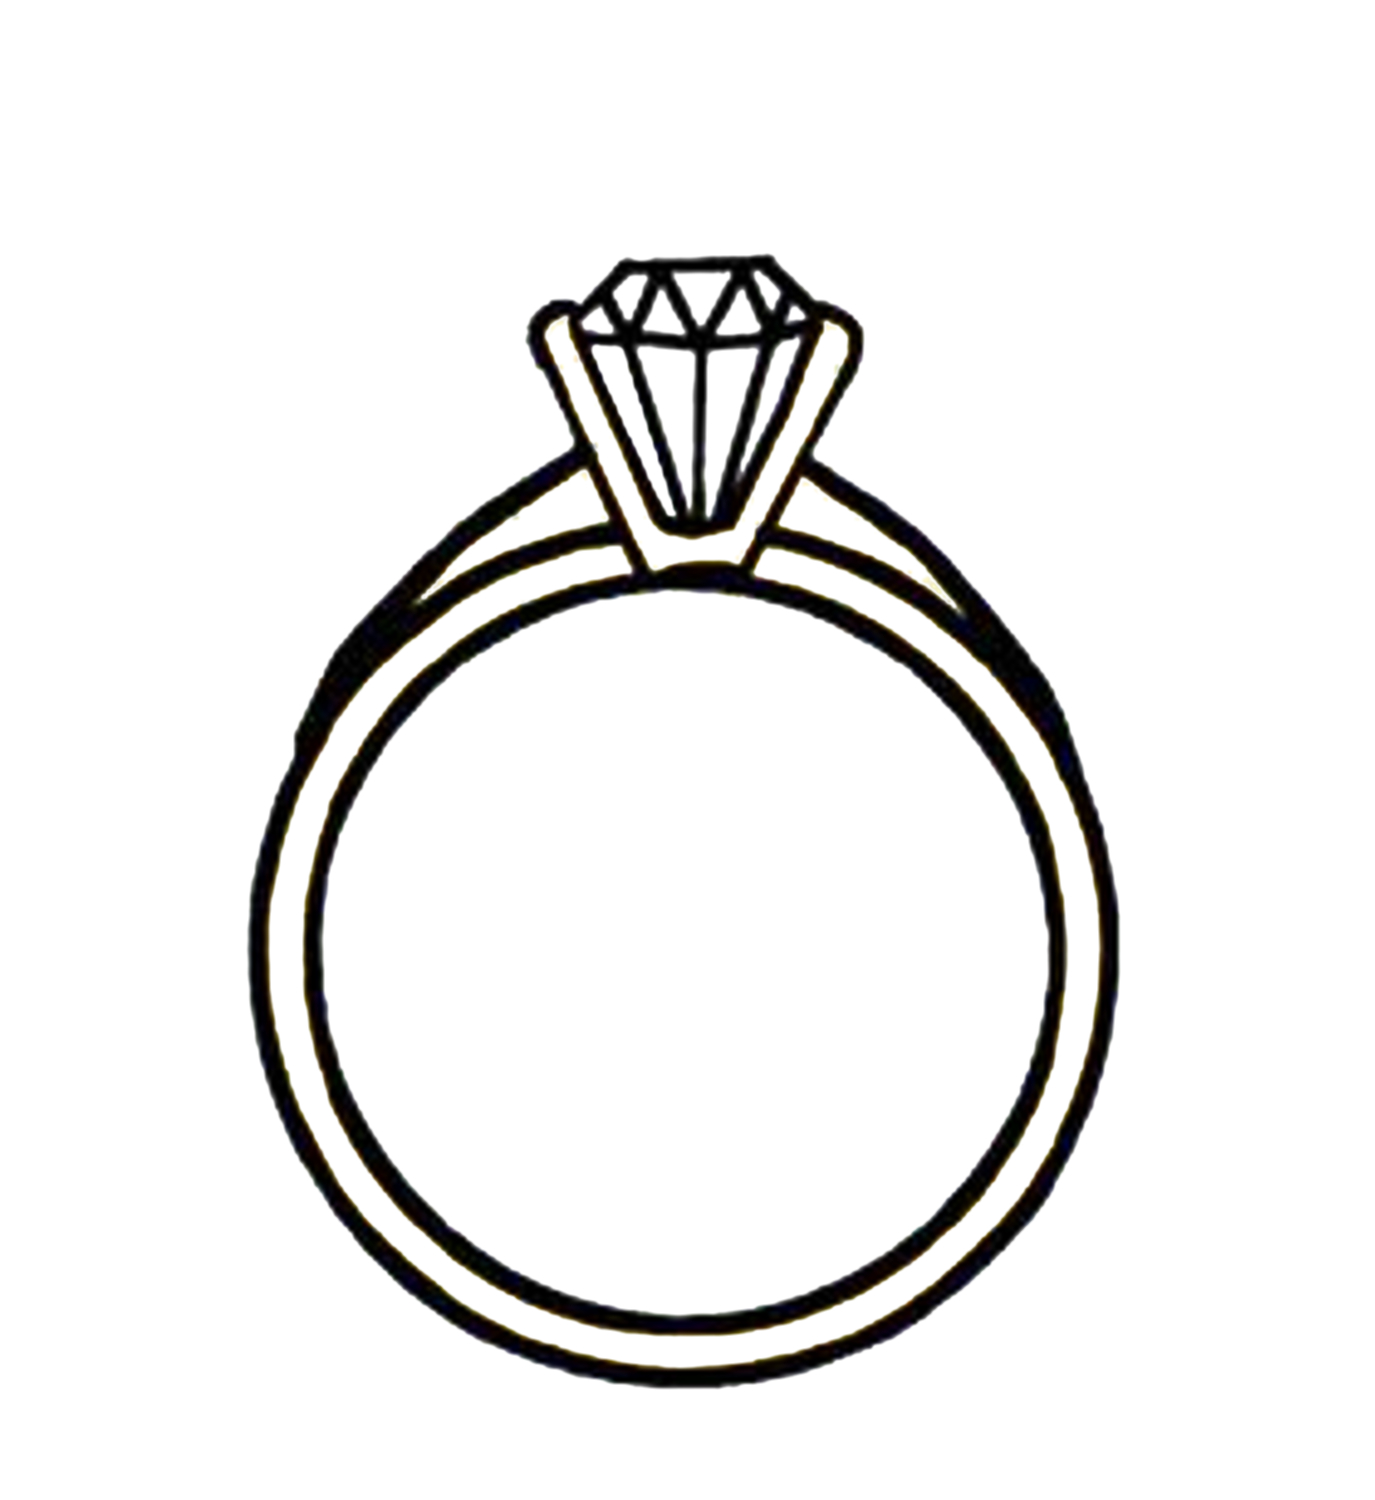 coloring pages of rings - photo#10